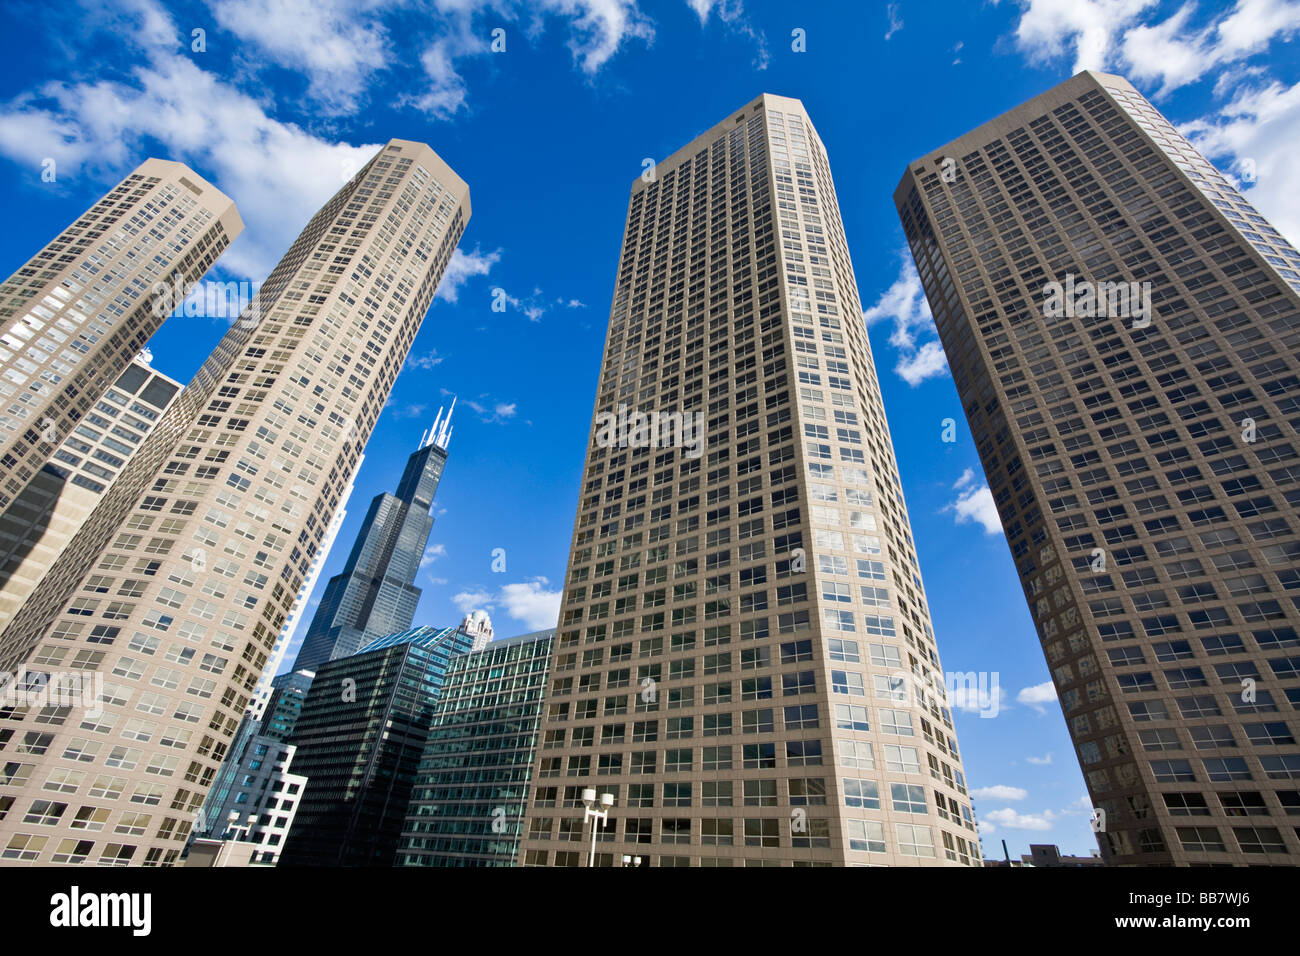 apartment buildings in chicago il stock photo 24145358 alamy